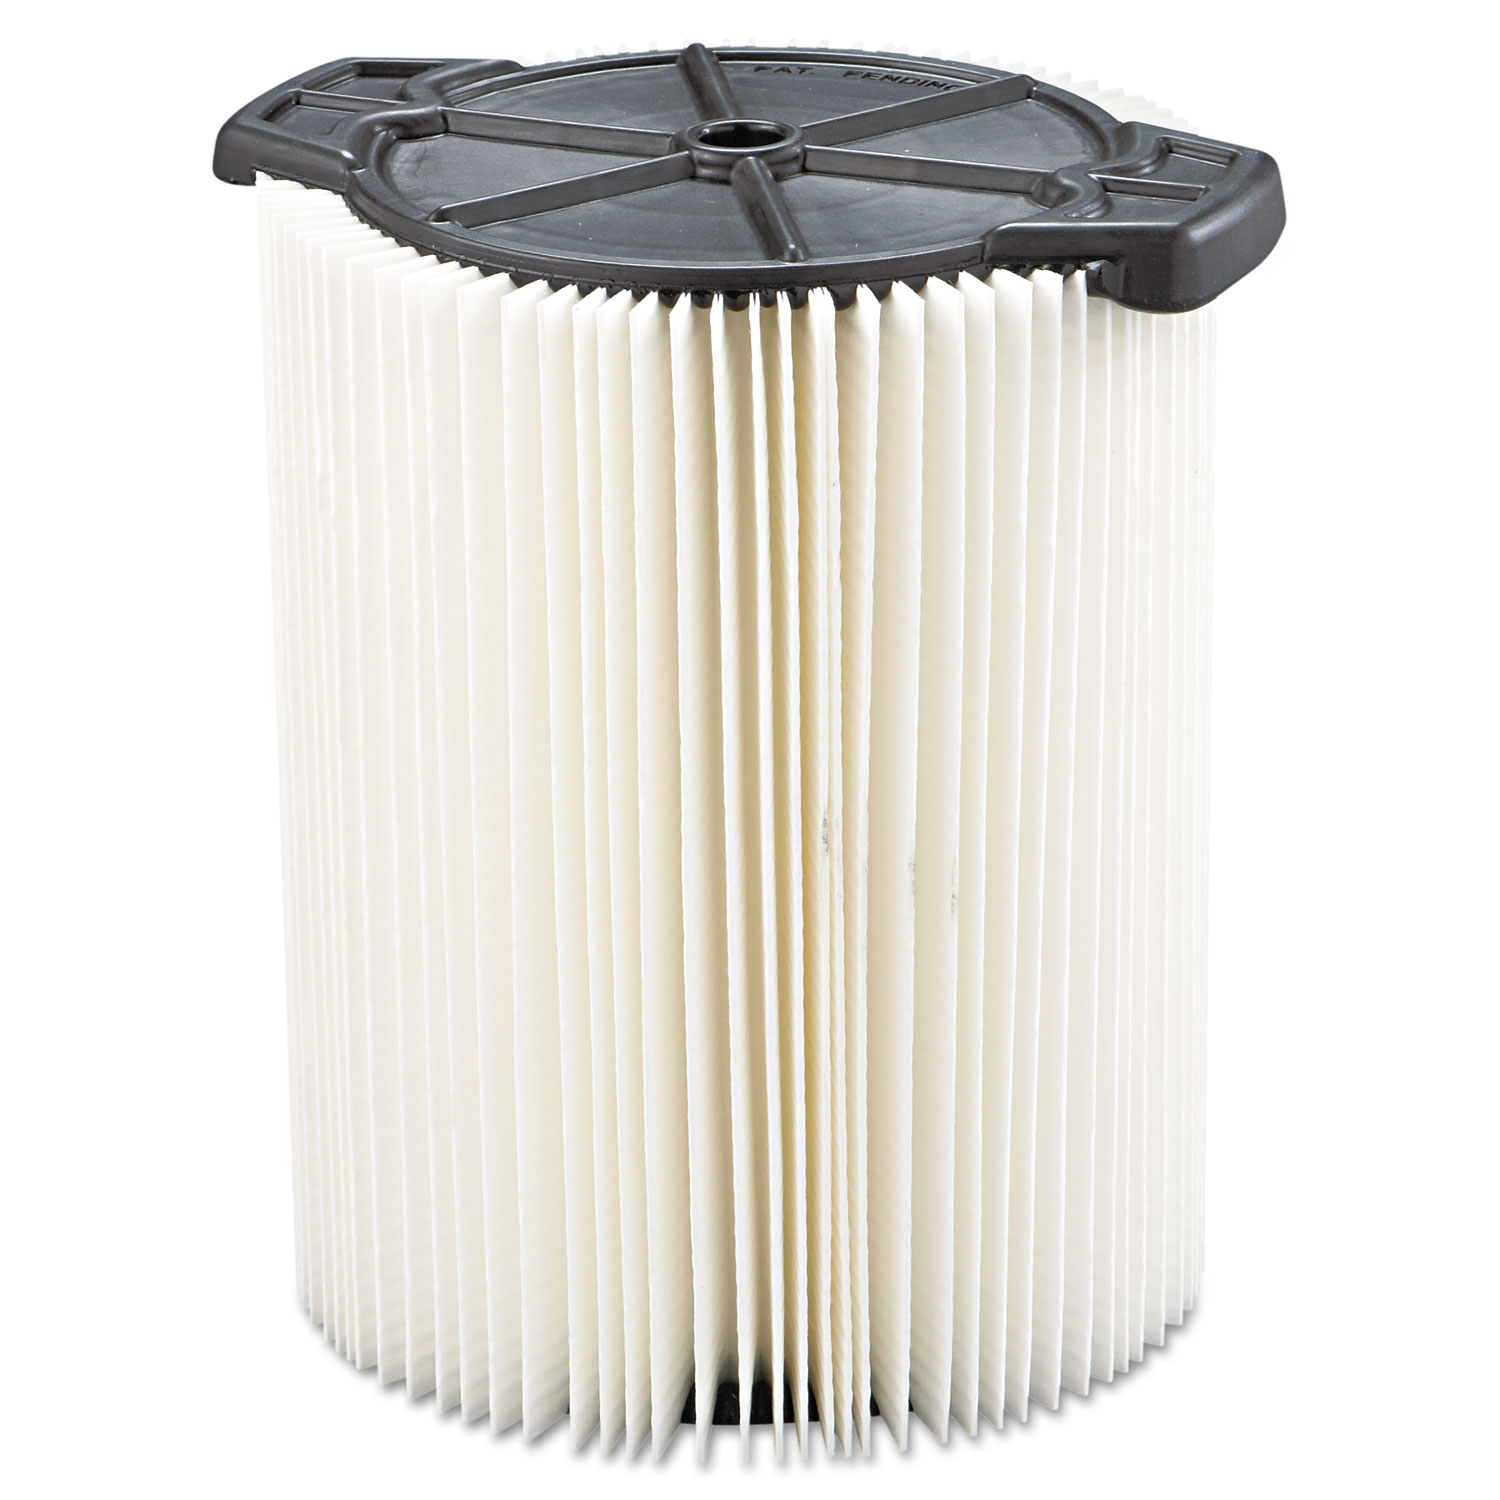 Standard Pleated Paper Vacuum Filter, For 5 to 20gal Wet/Dry Vacs